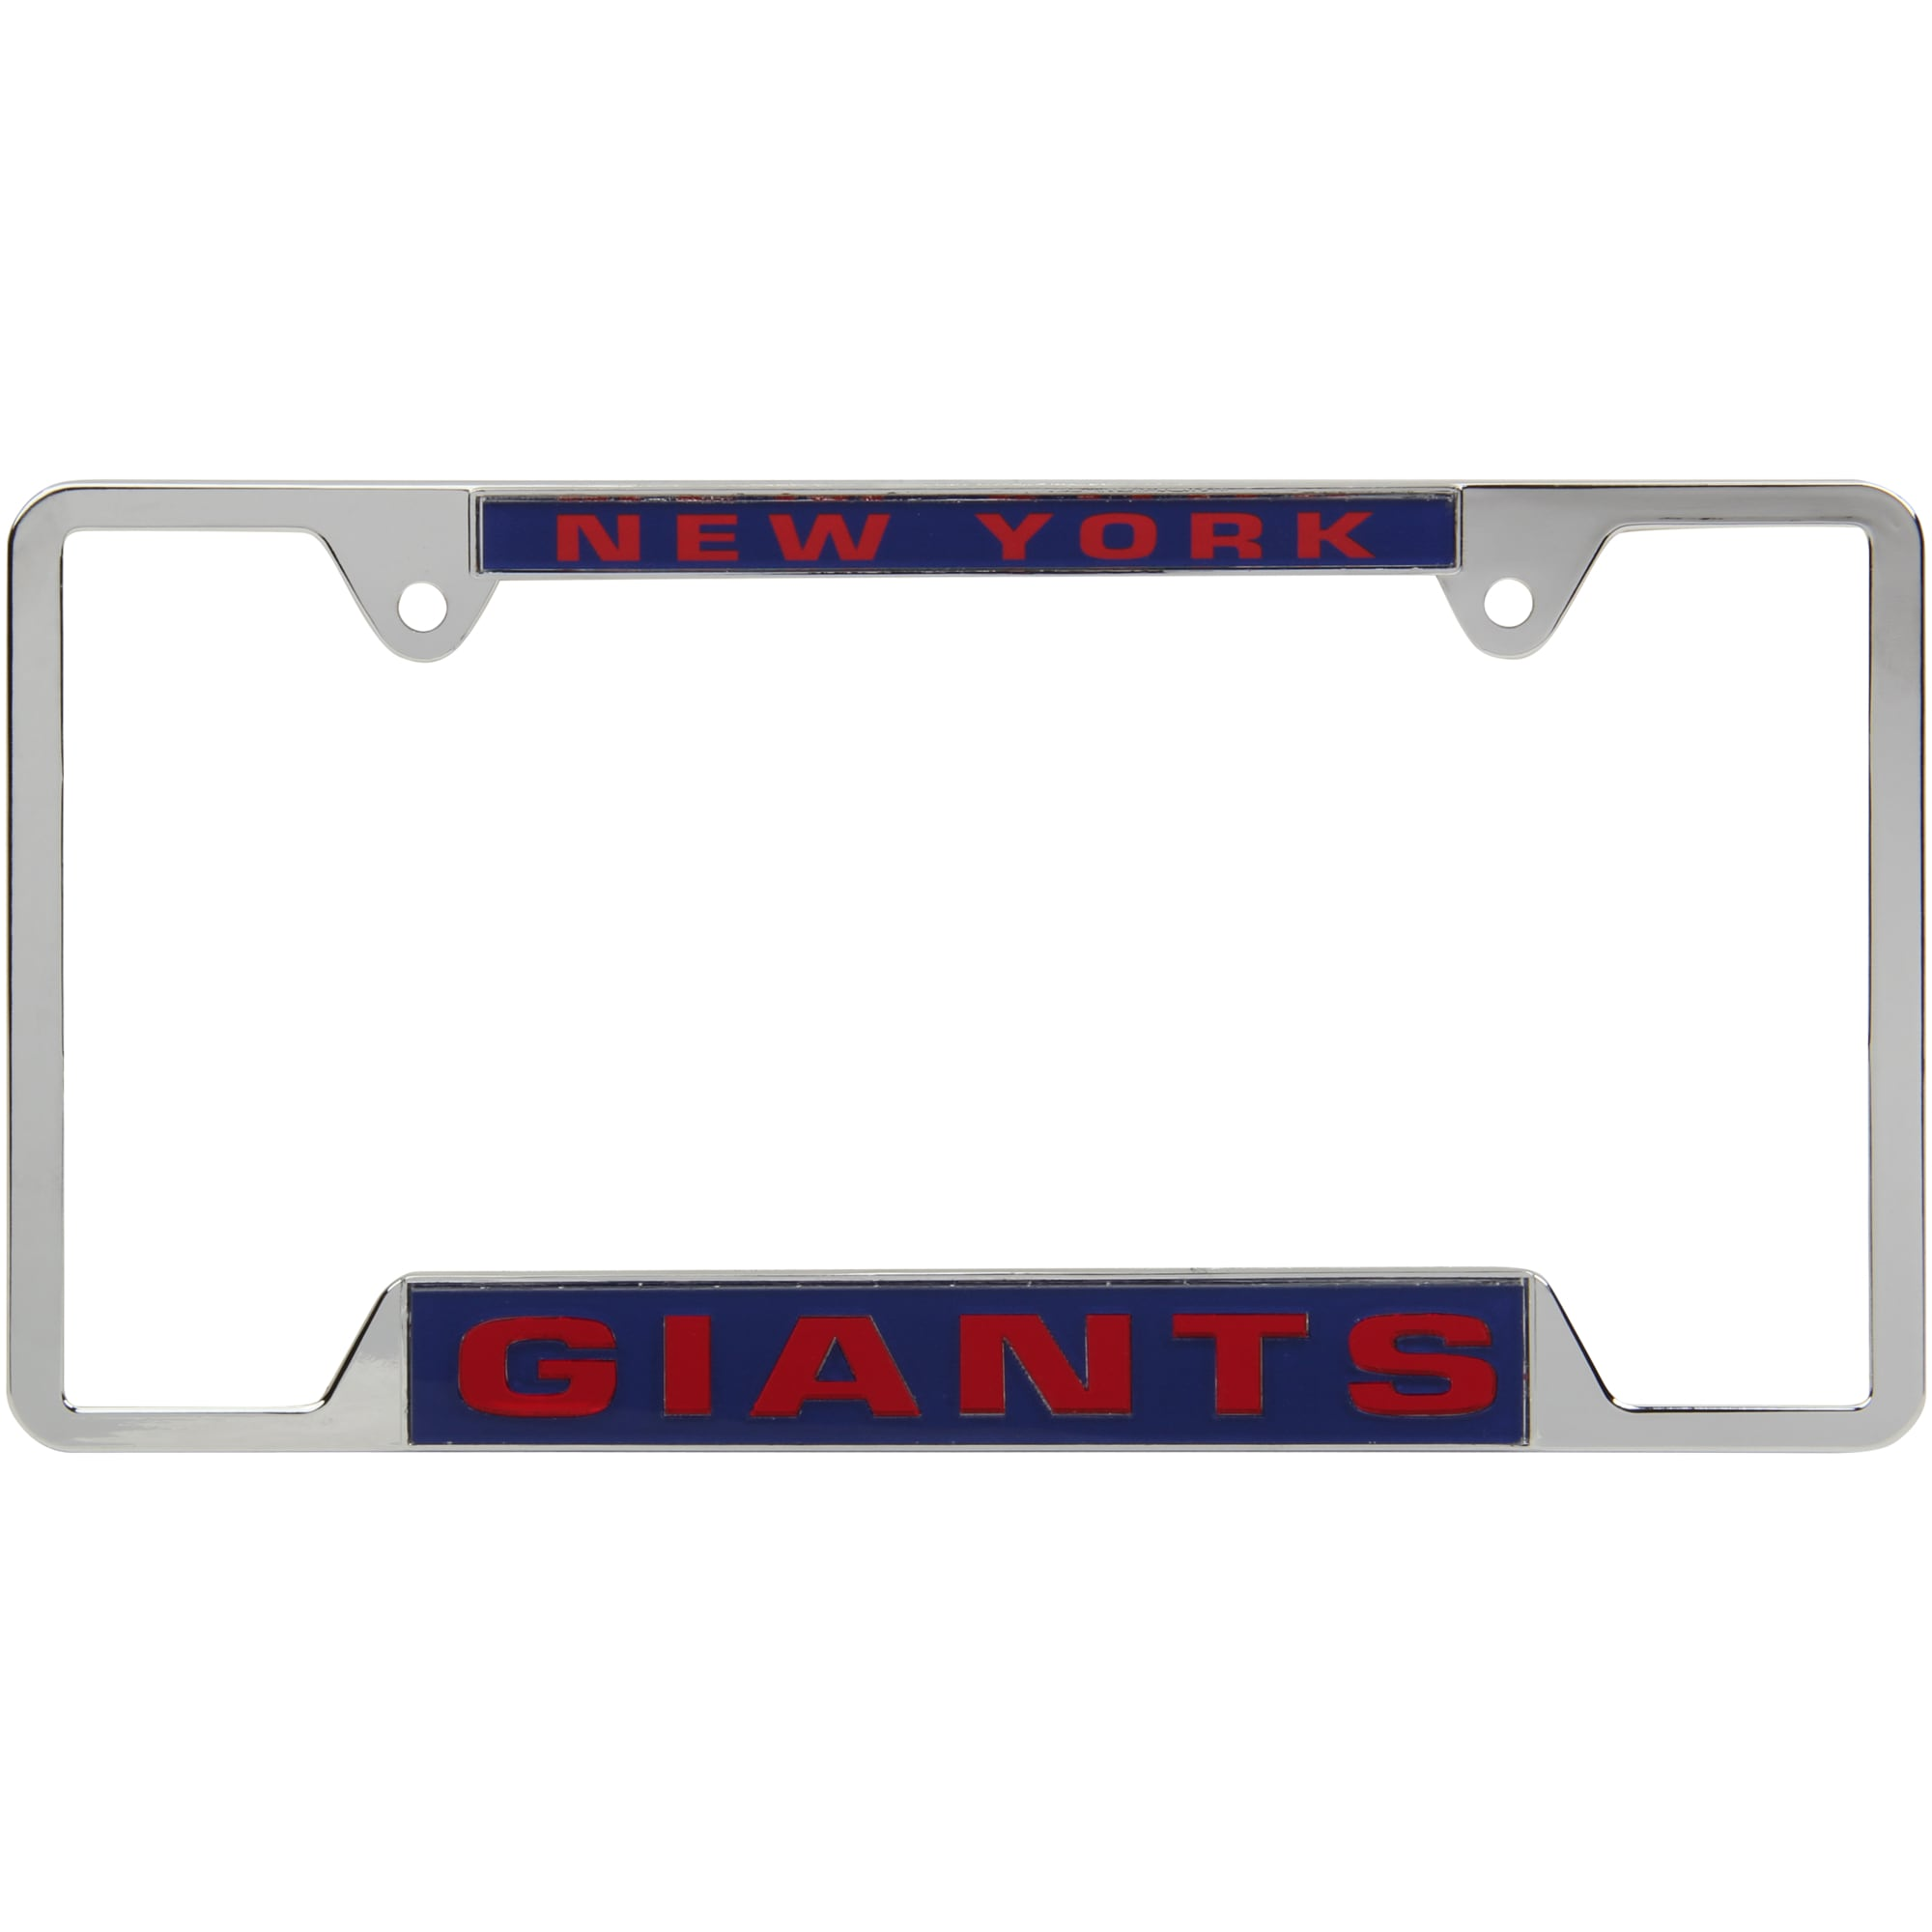 New York Giants WinCraft 4-Tab Style Inlaid Metal License Plate Frame